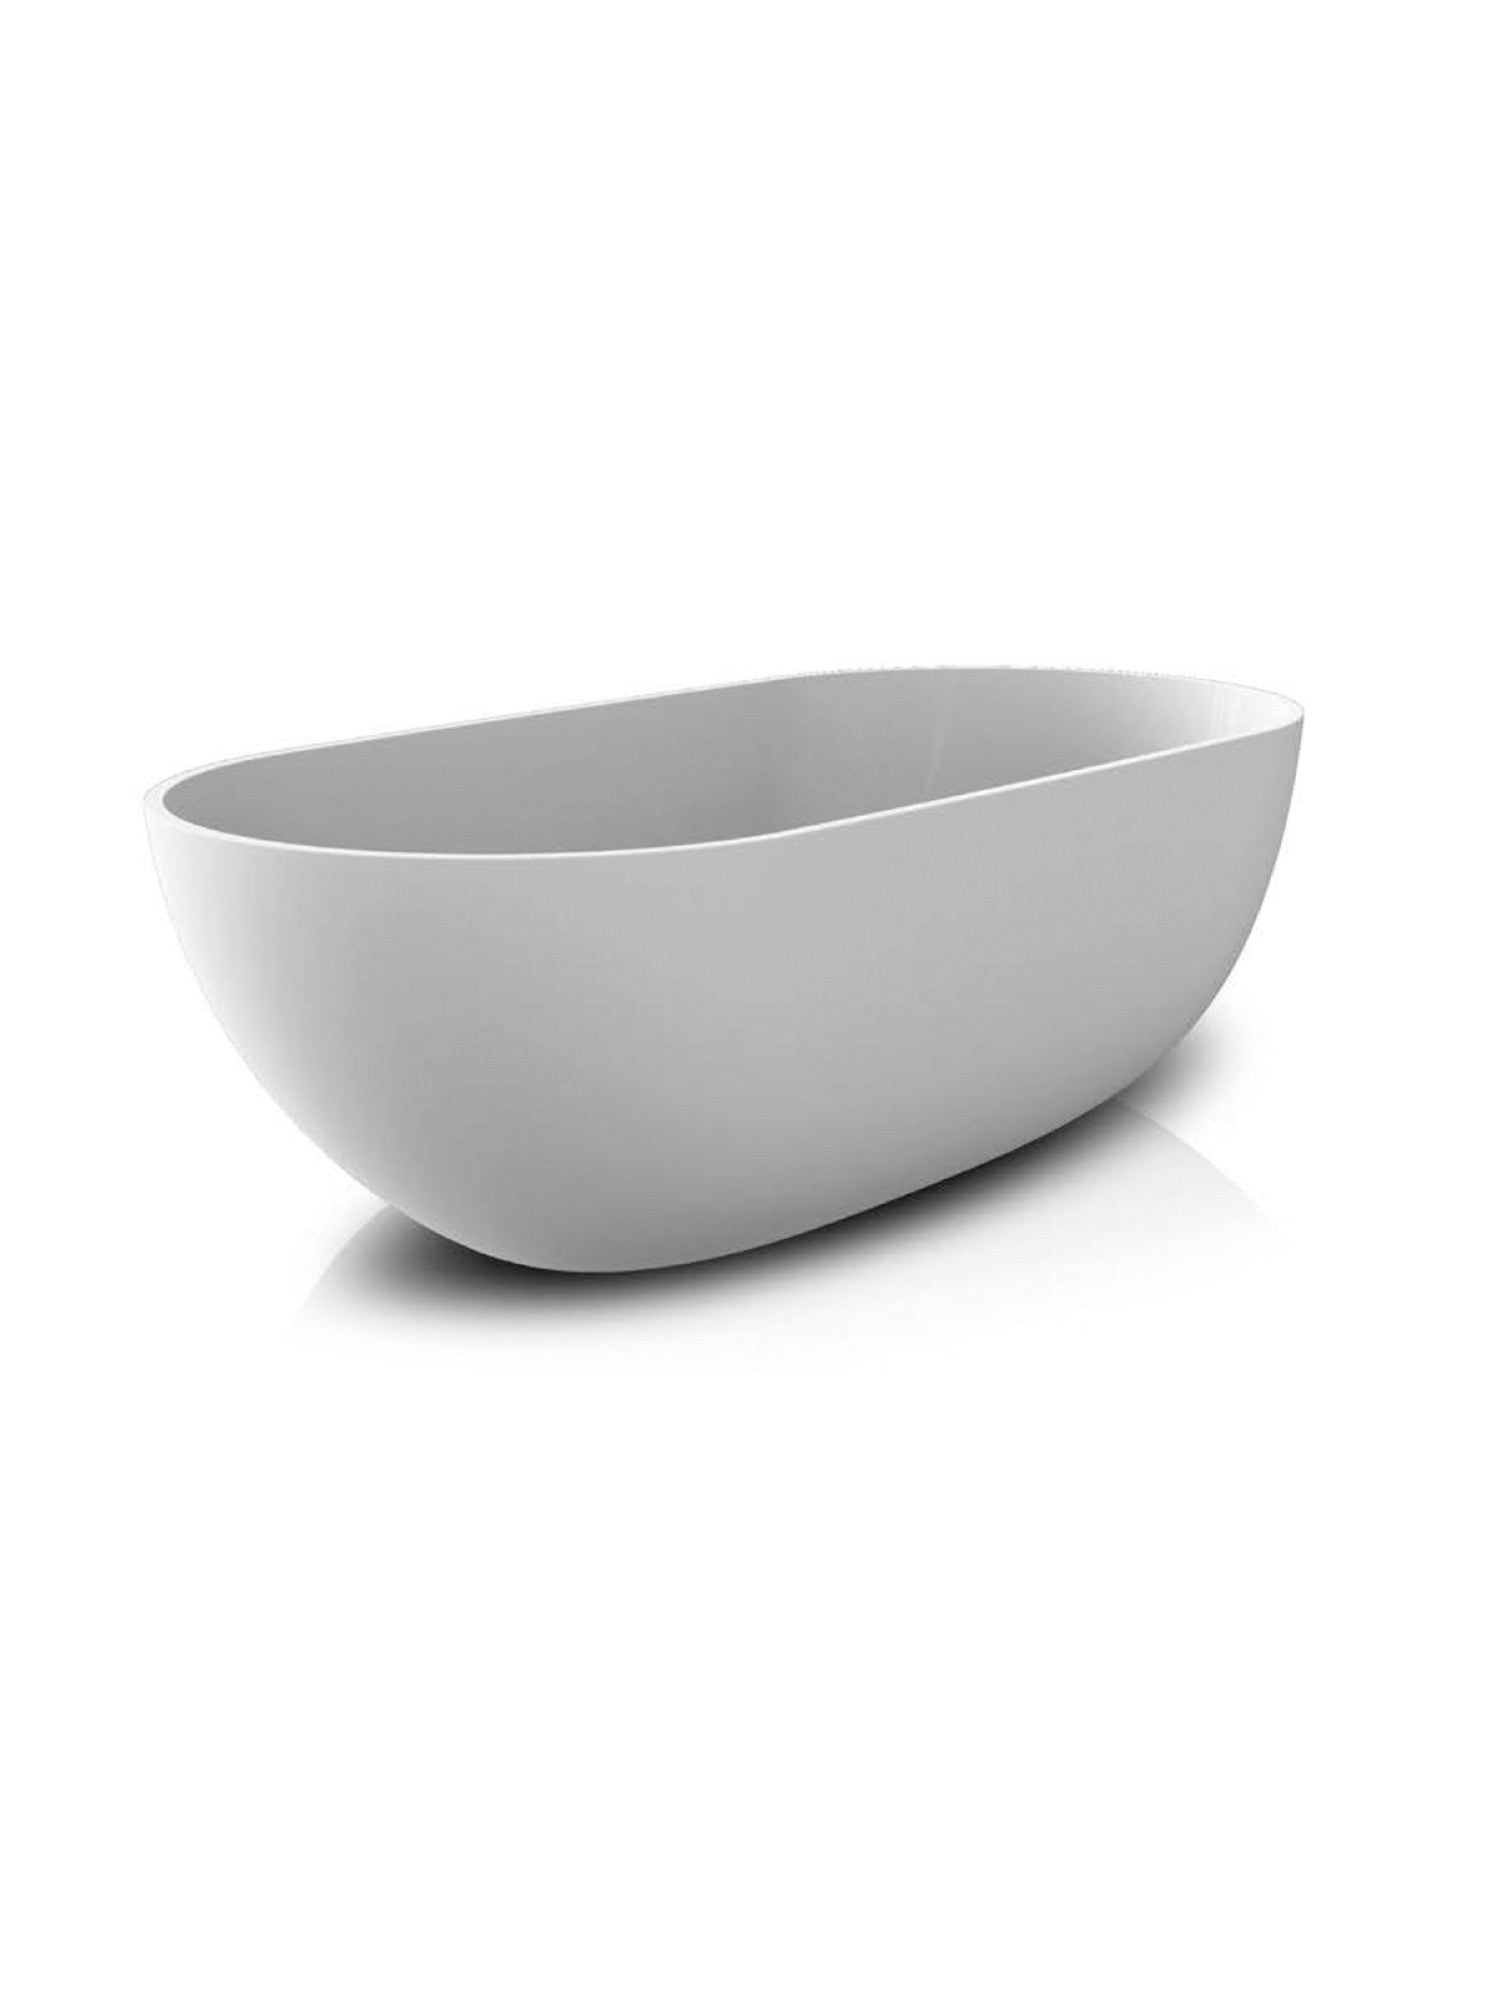 Dubai Freestanding bathtub #SBM059 (Export)